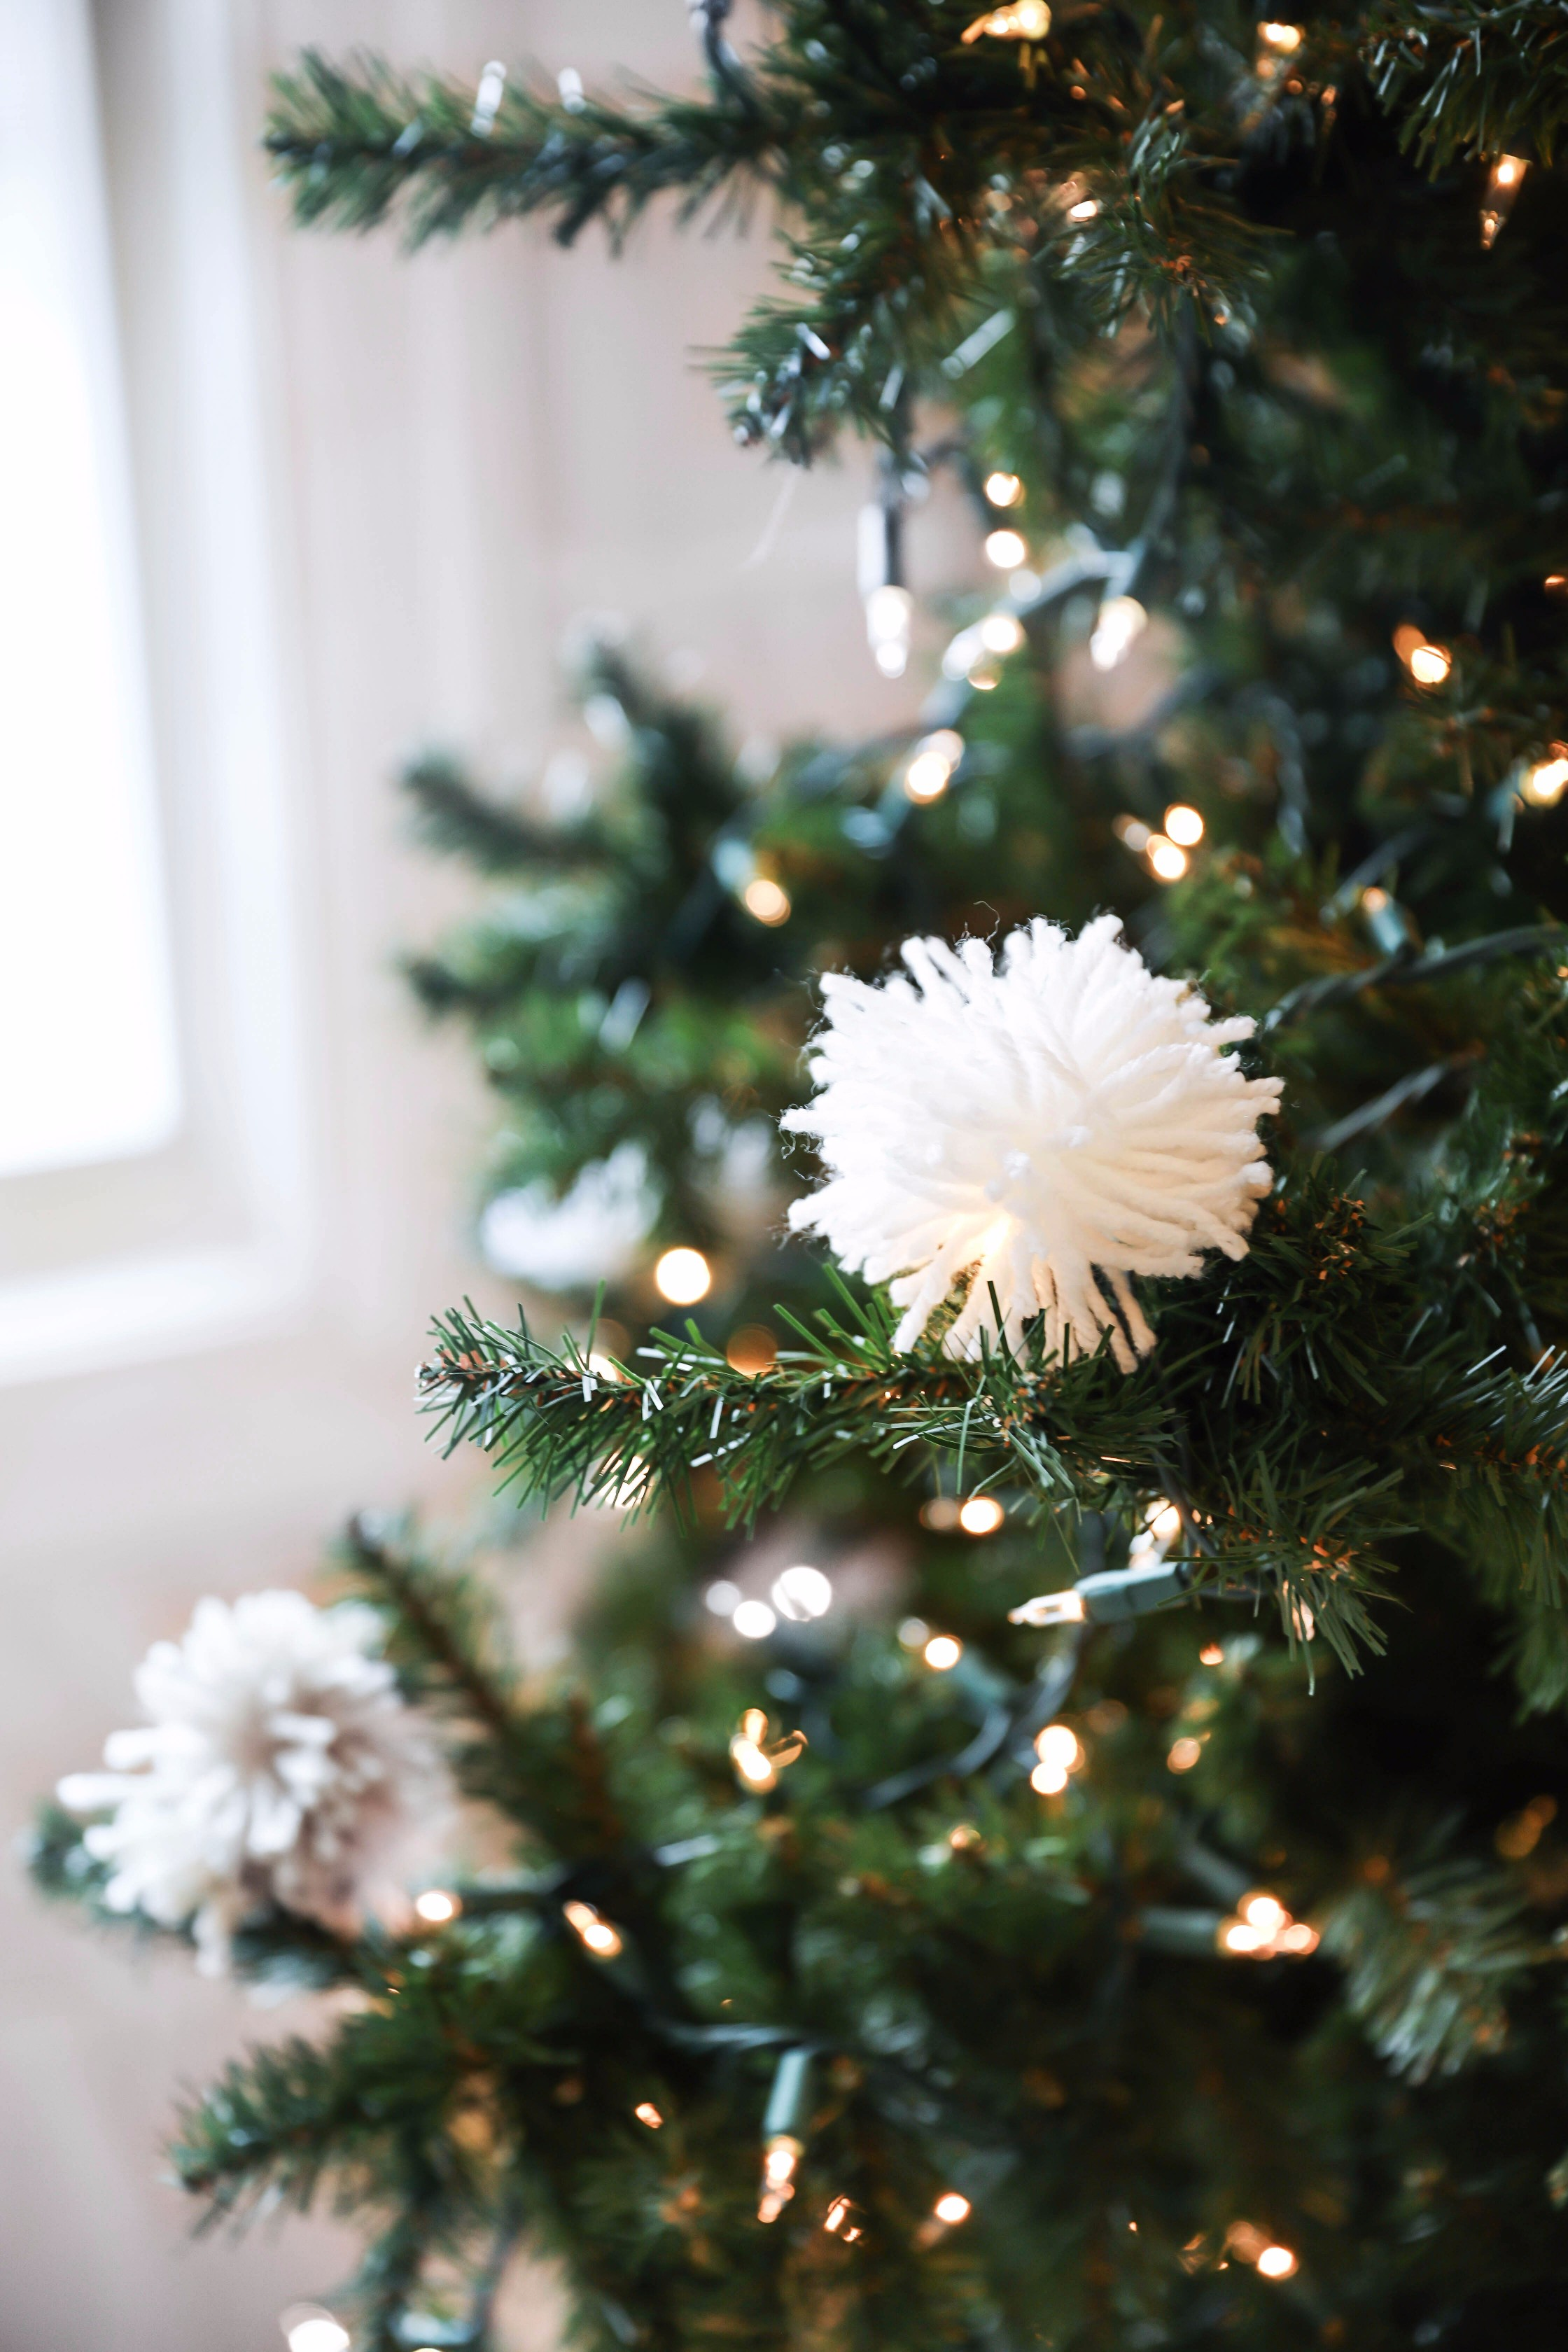 Holiday DIY decor! Learn how to make DIY snowball ornaments, tassel ornaments, pom pom ornaments, pom pom pillows, and pom pom garlands! Details on daily dose of charm lauren lindmark